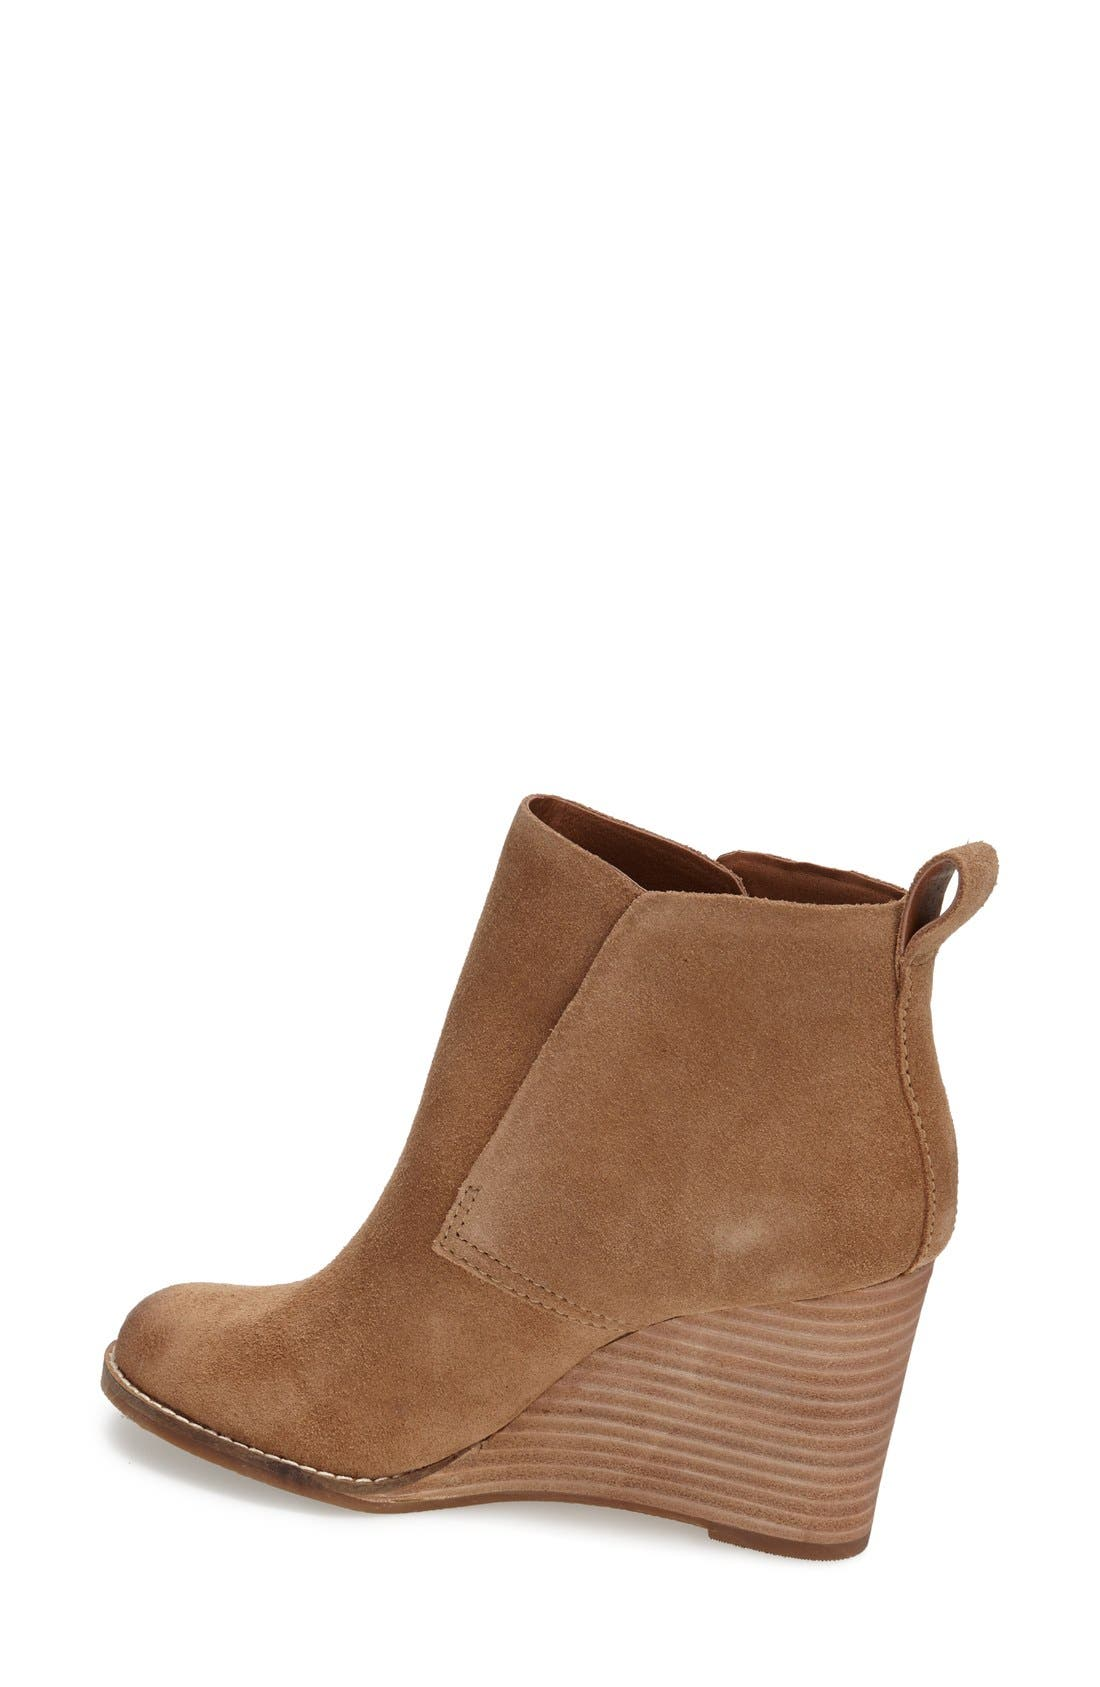 'Yoniana' Wedge Bootie,                             Alternate thumbnail 13, color,